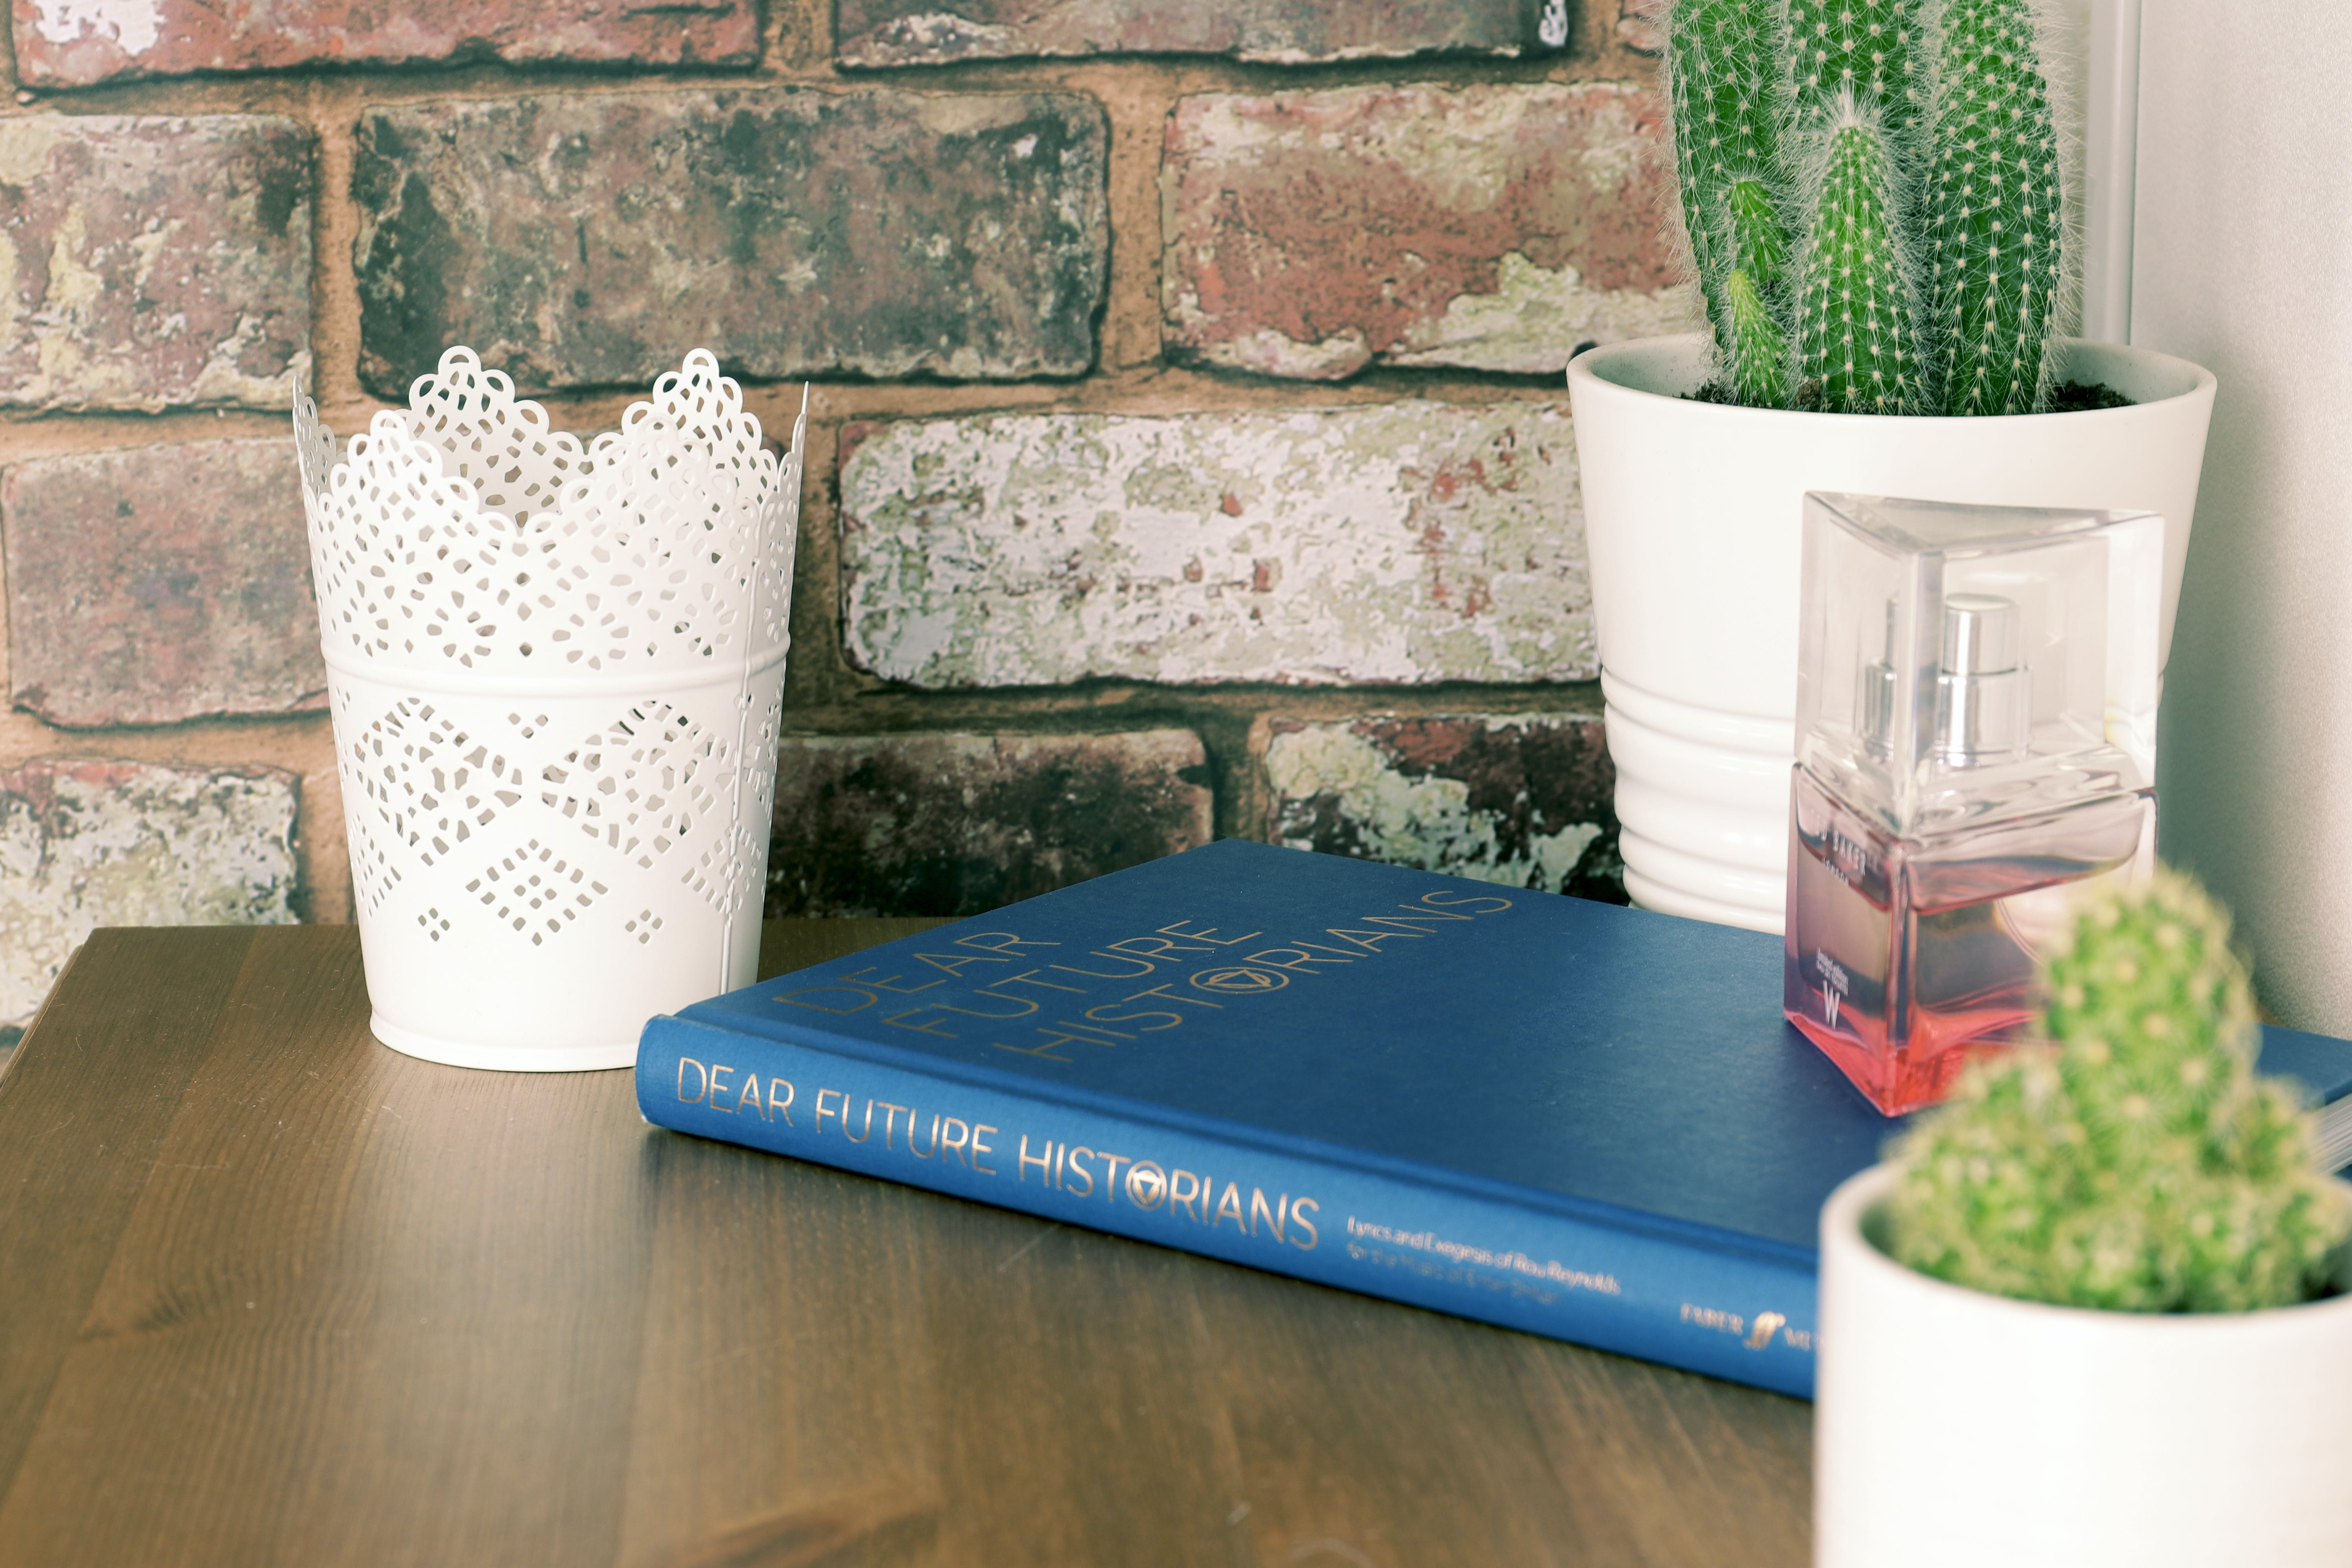 Blue Book on Brown Wooden Table with flower vases